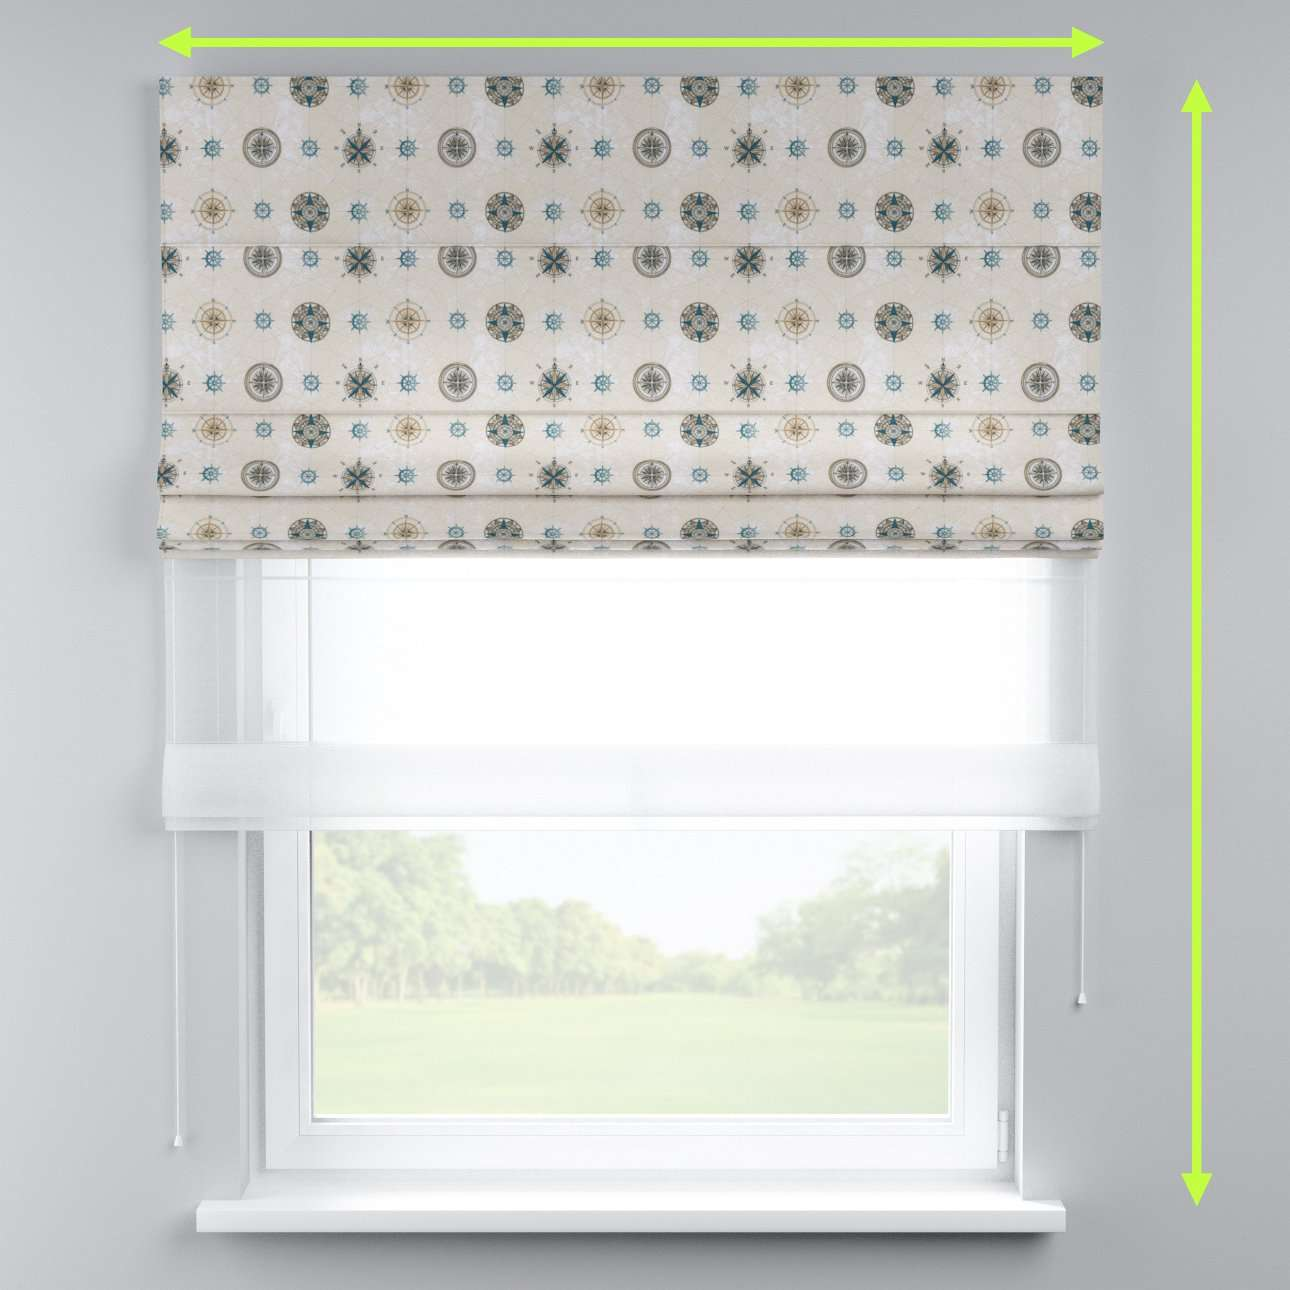 Voile and fabric roman blind (DUO II) in collection Freestyle, fabric: 137-63